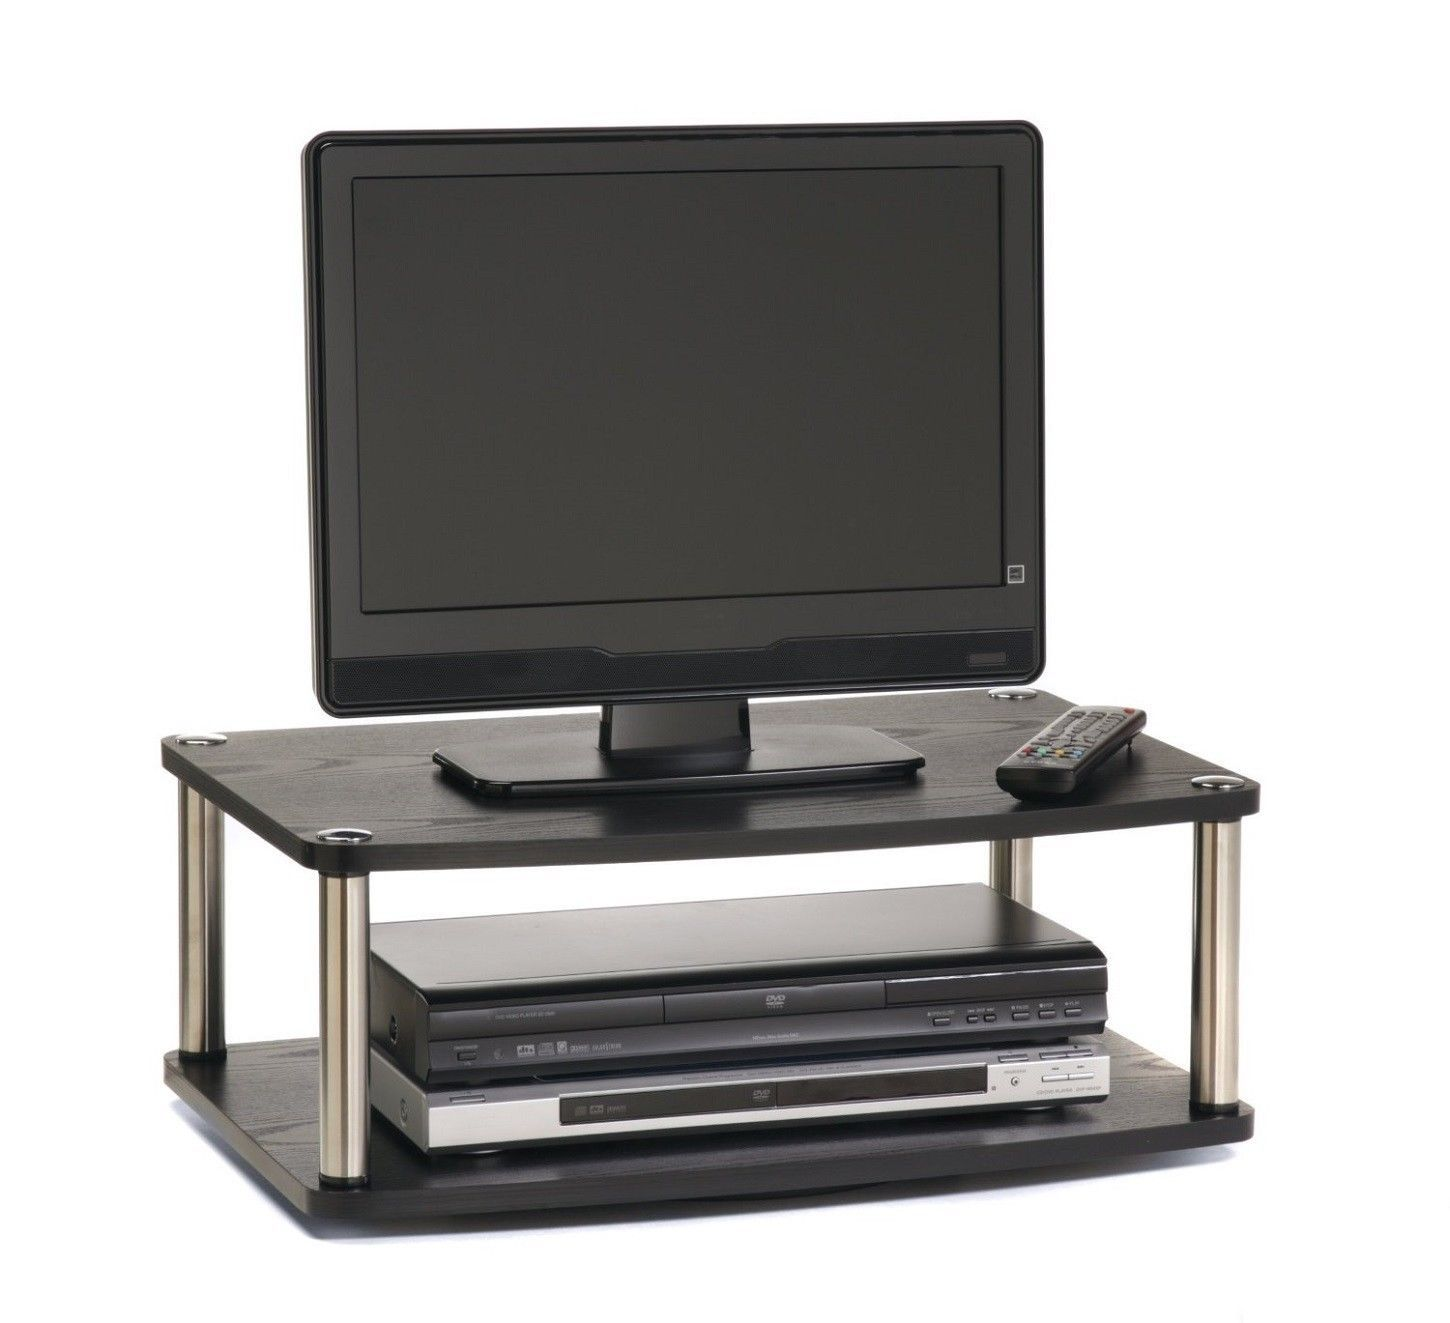 Counter Top TV Stand Swivel 360 Degrees Blk 2 Tier Organizer TV Plus Components